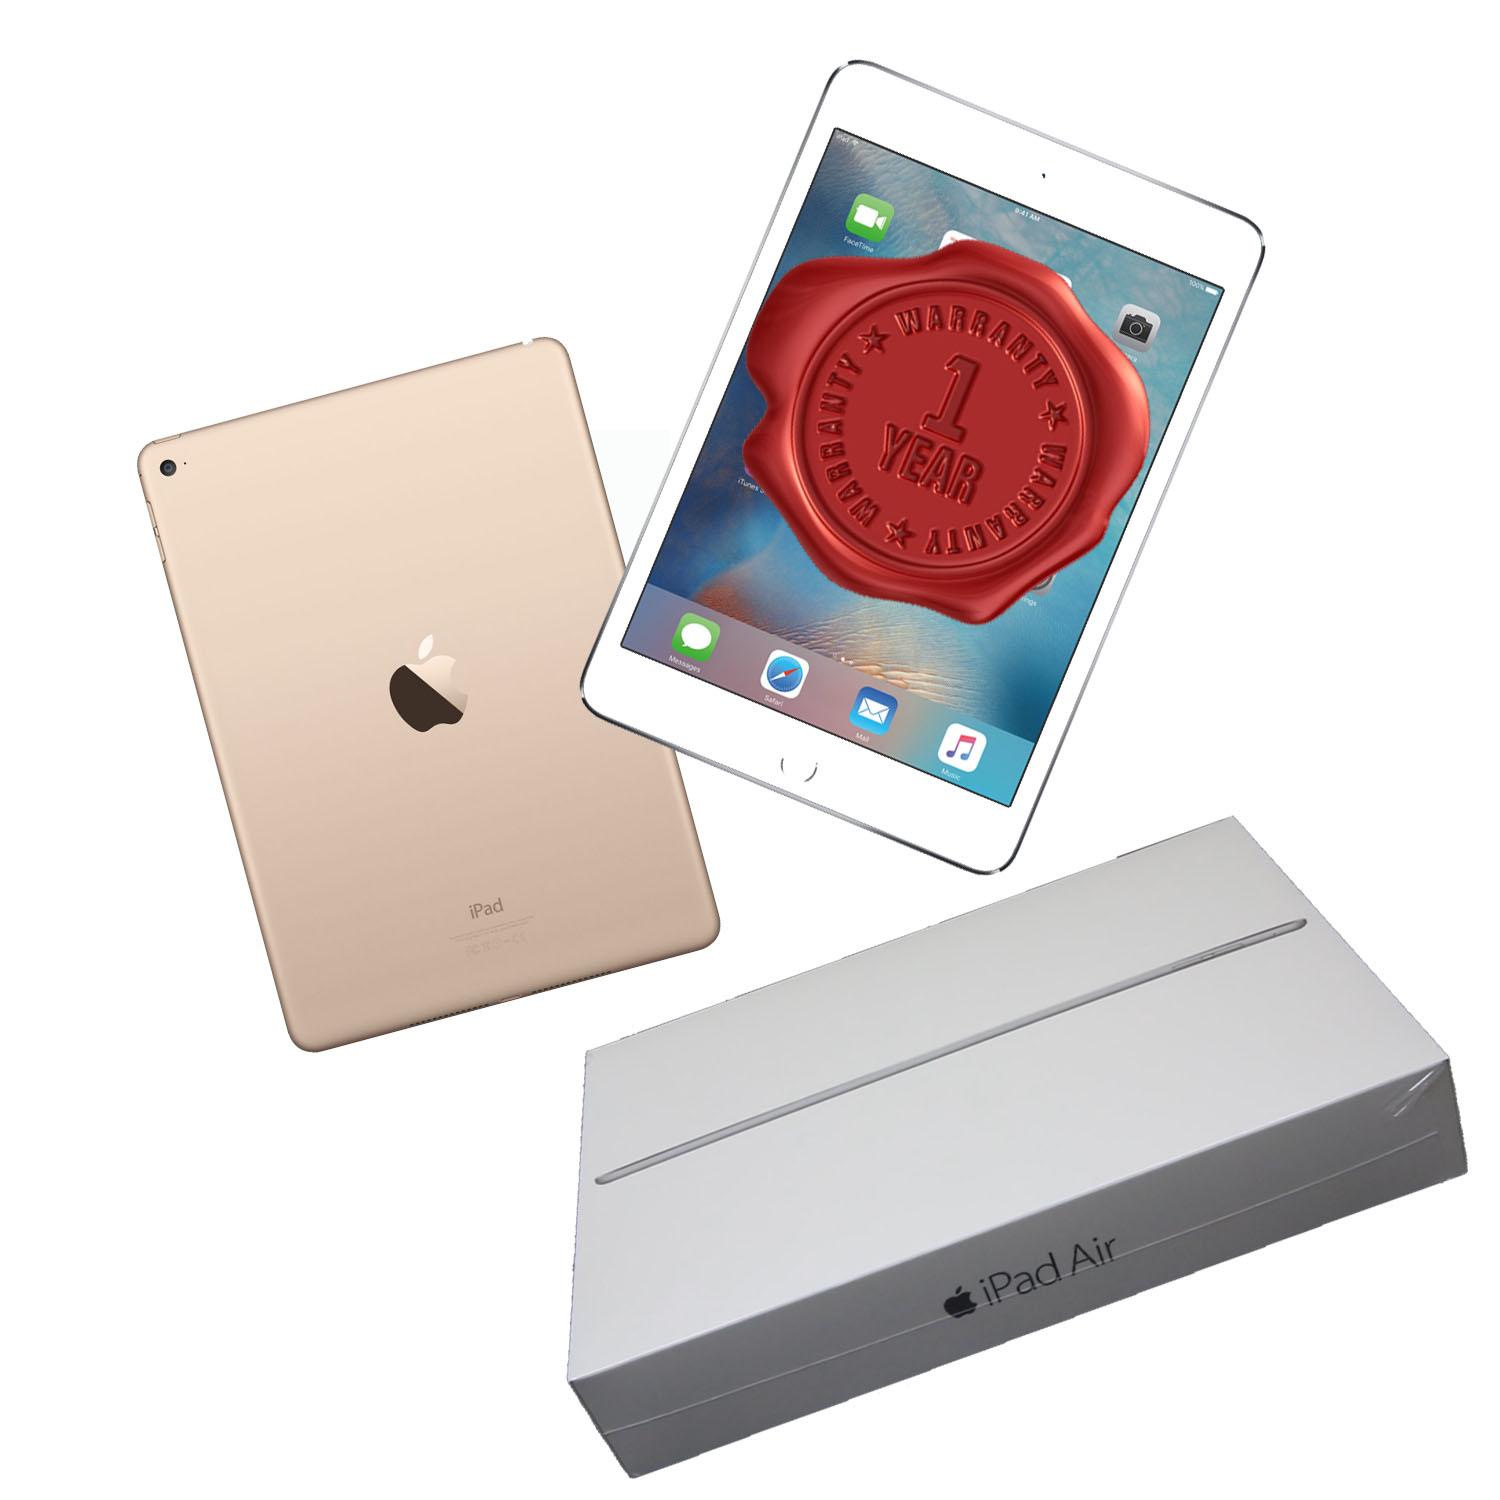 Apple iPad AIR 2 Gold 32GB Wi-Fi Only A-Graded plus ONE YEAR WARRANTY